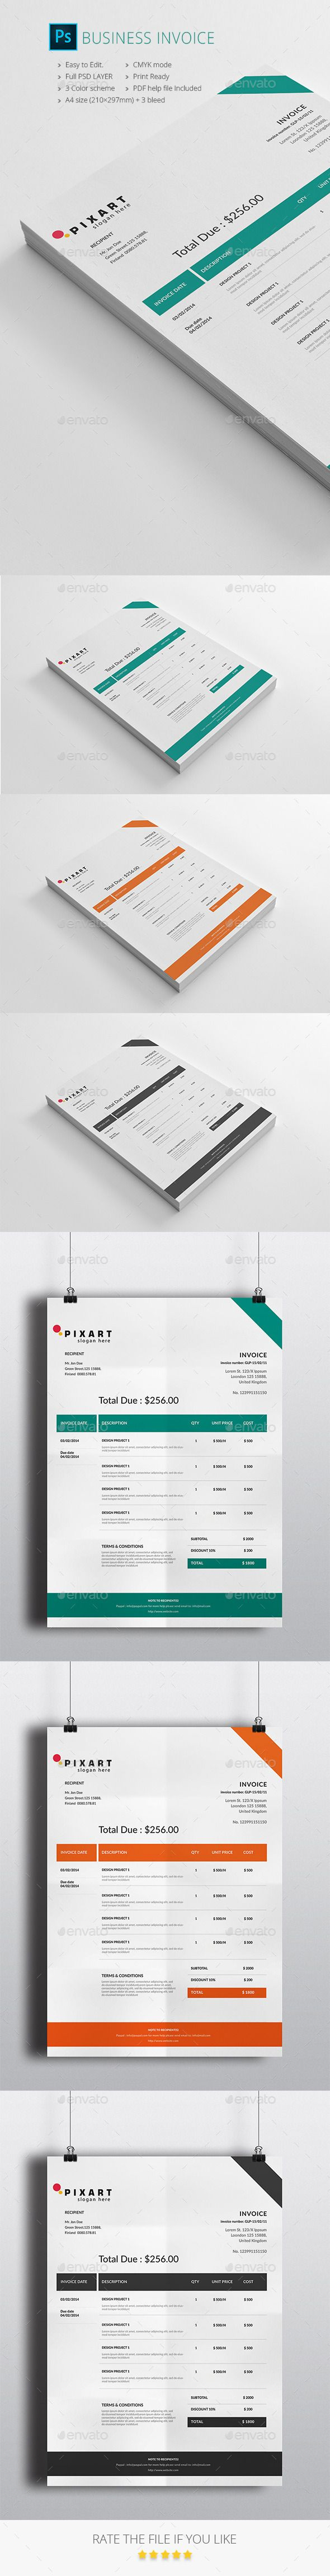 Business Invoice Template PSD #design Download: http://graphicriver.net/item/business-invoice/14013733?ref=ksioks